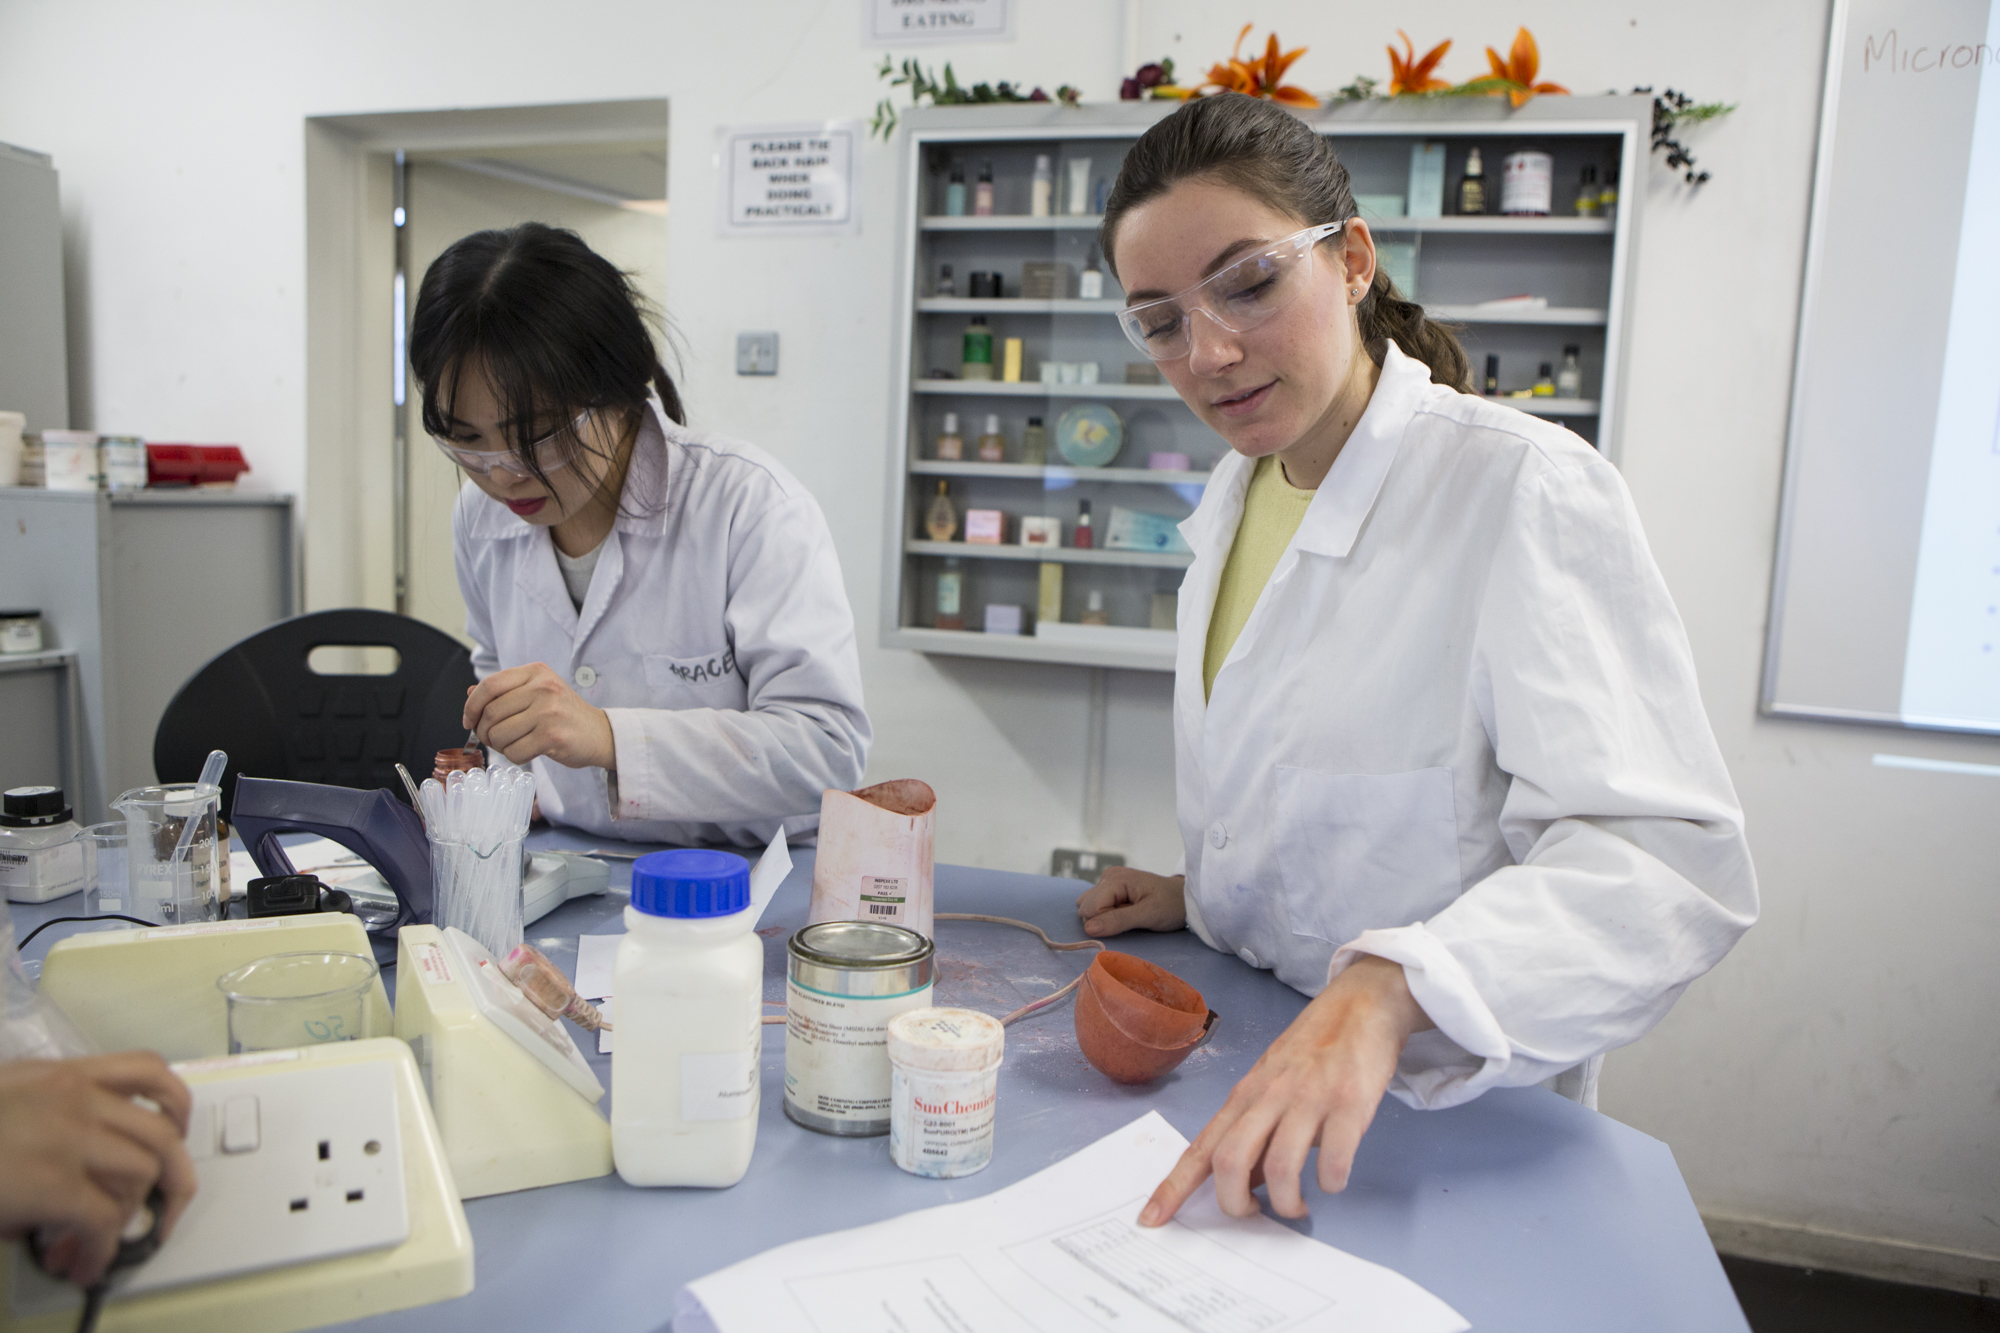 Students working in lab.